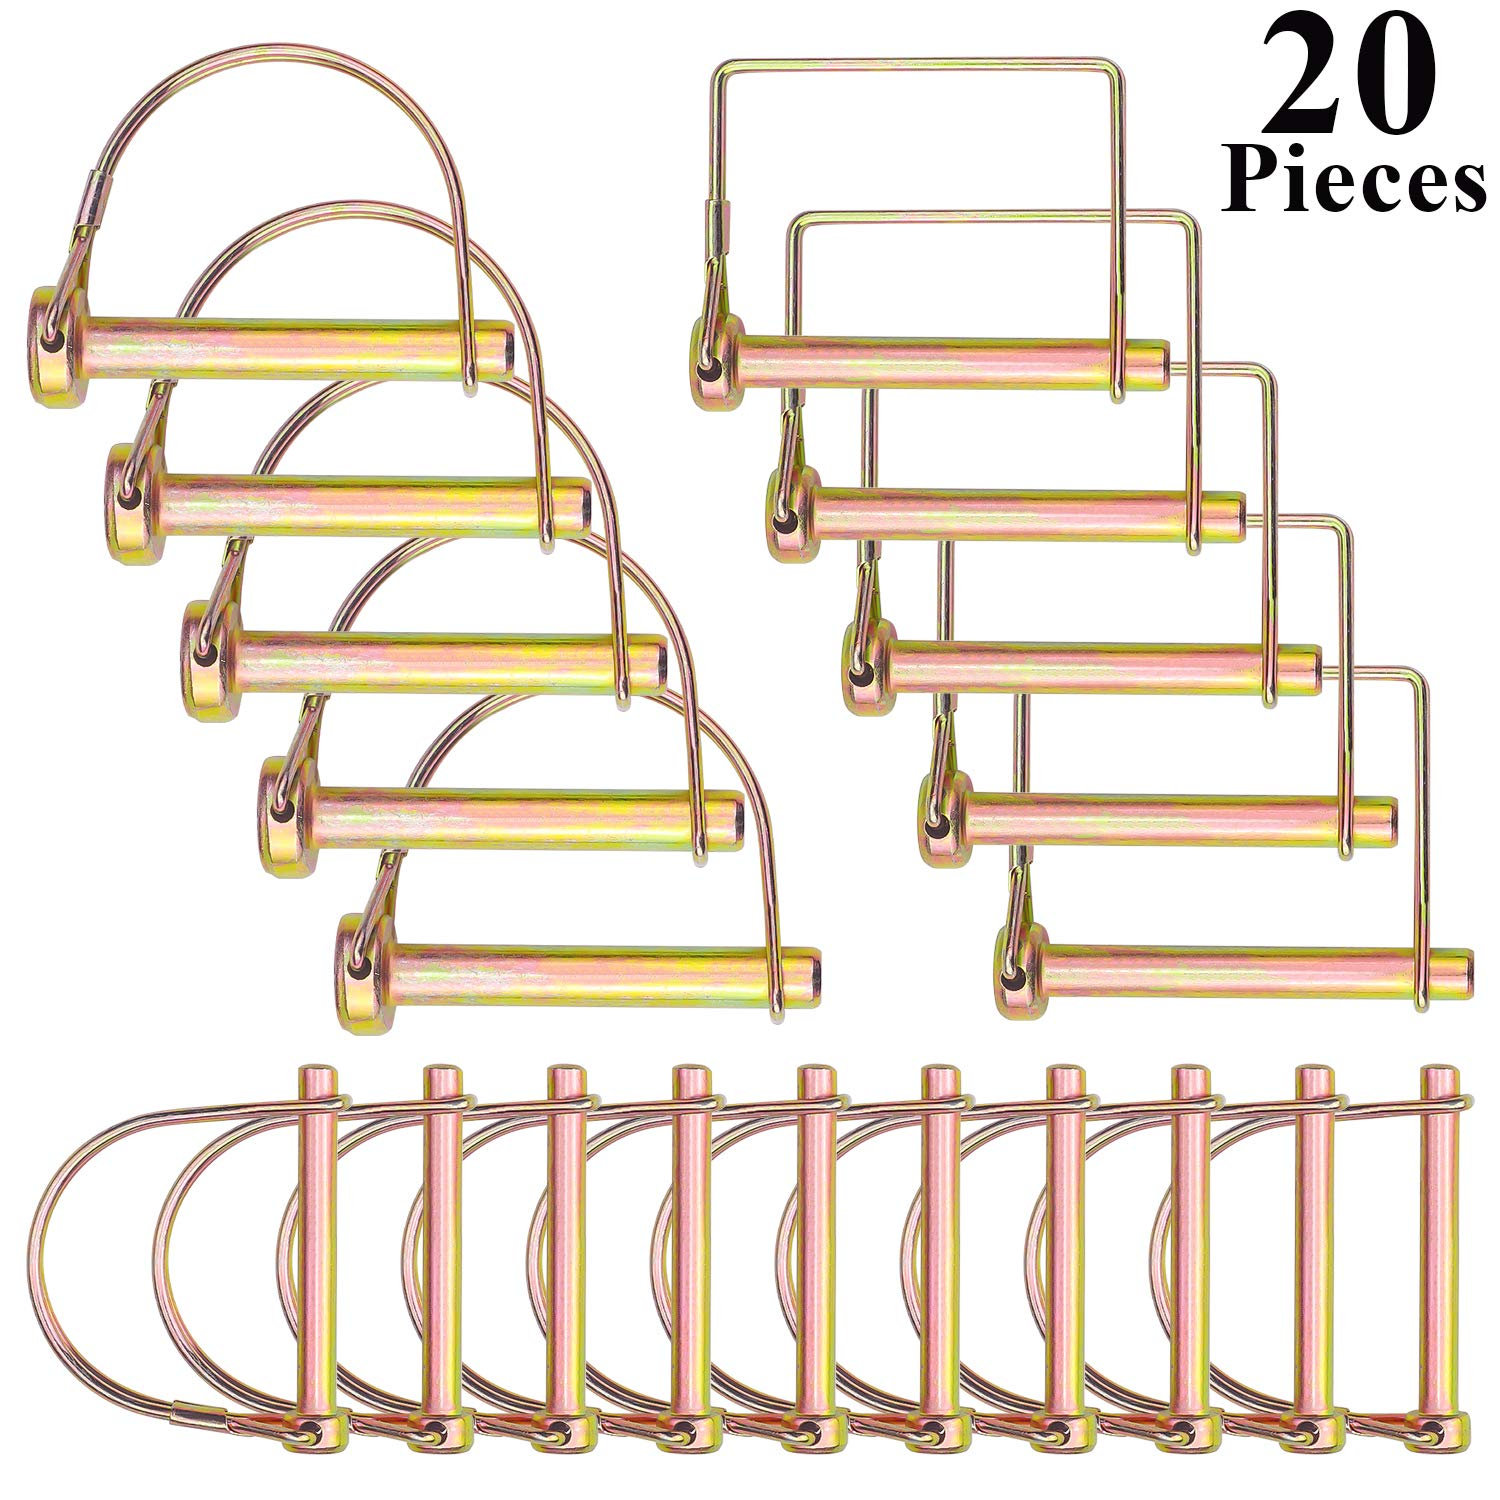 Favordrory 20 Pieces Shaft Locking Pin Safety Coupler Pin 1/4 inch, 5/16 inch, 3/8 inch Diameter in 2 Shapes of Square and Arch for Farm Trailers Wagons Lawn Garden by Favordrory